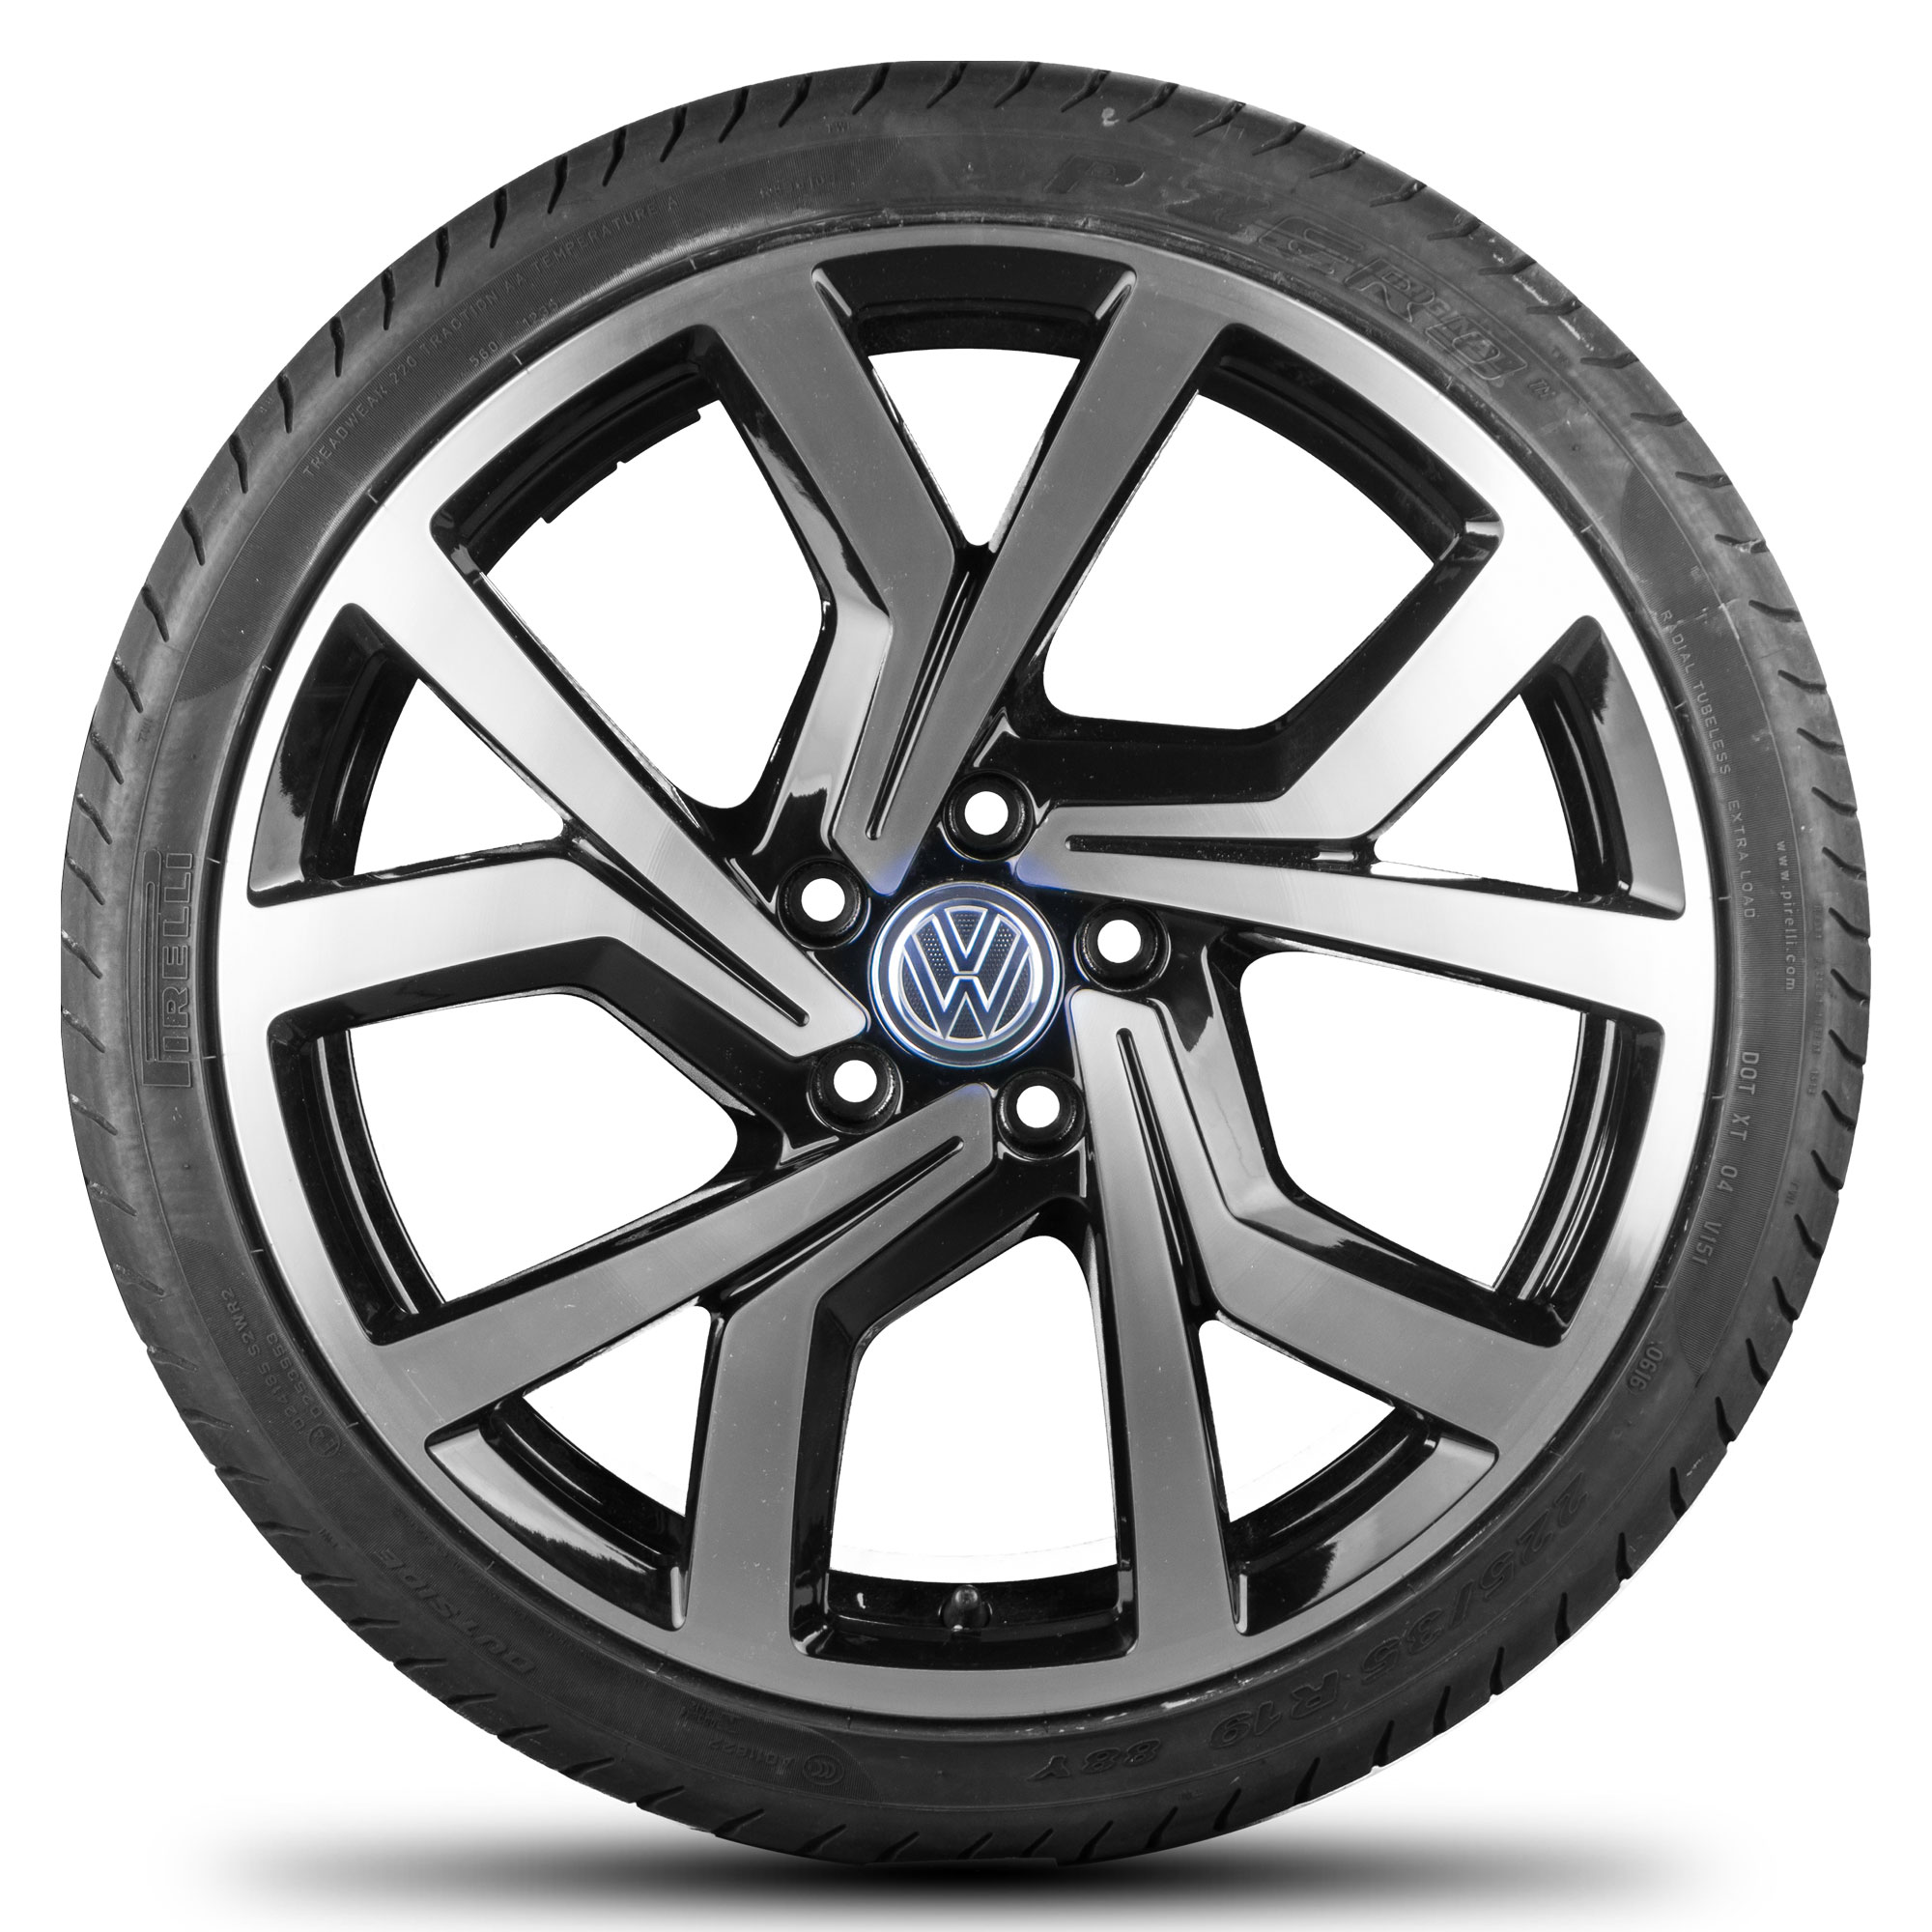 vw golf 5 6 7 gti gtd 19 zoll alloy wheel normal tyre r line brescia ebay. Black Bedroom Furniture Sets. Home Design Ideas